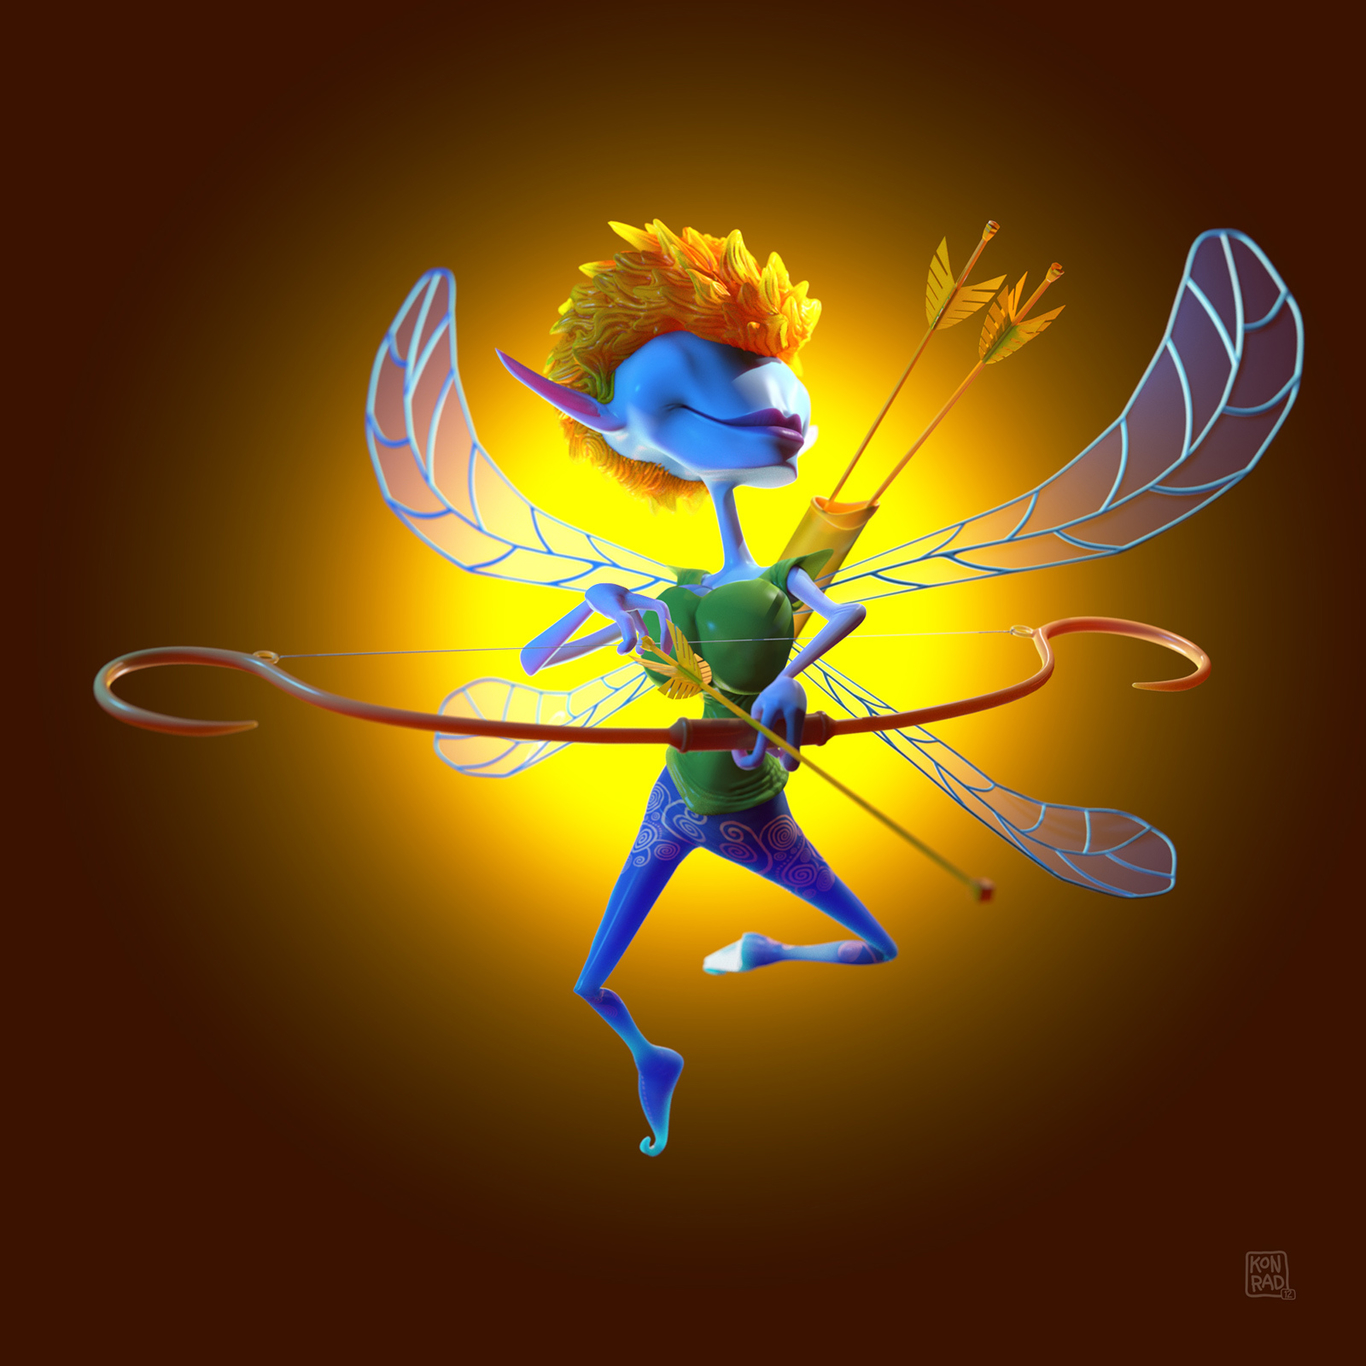 Peter eriksson the ray fairy 1 59d48975 ox8h